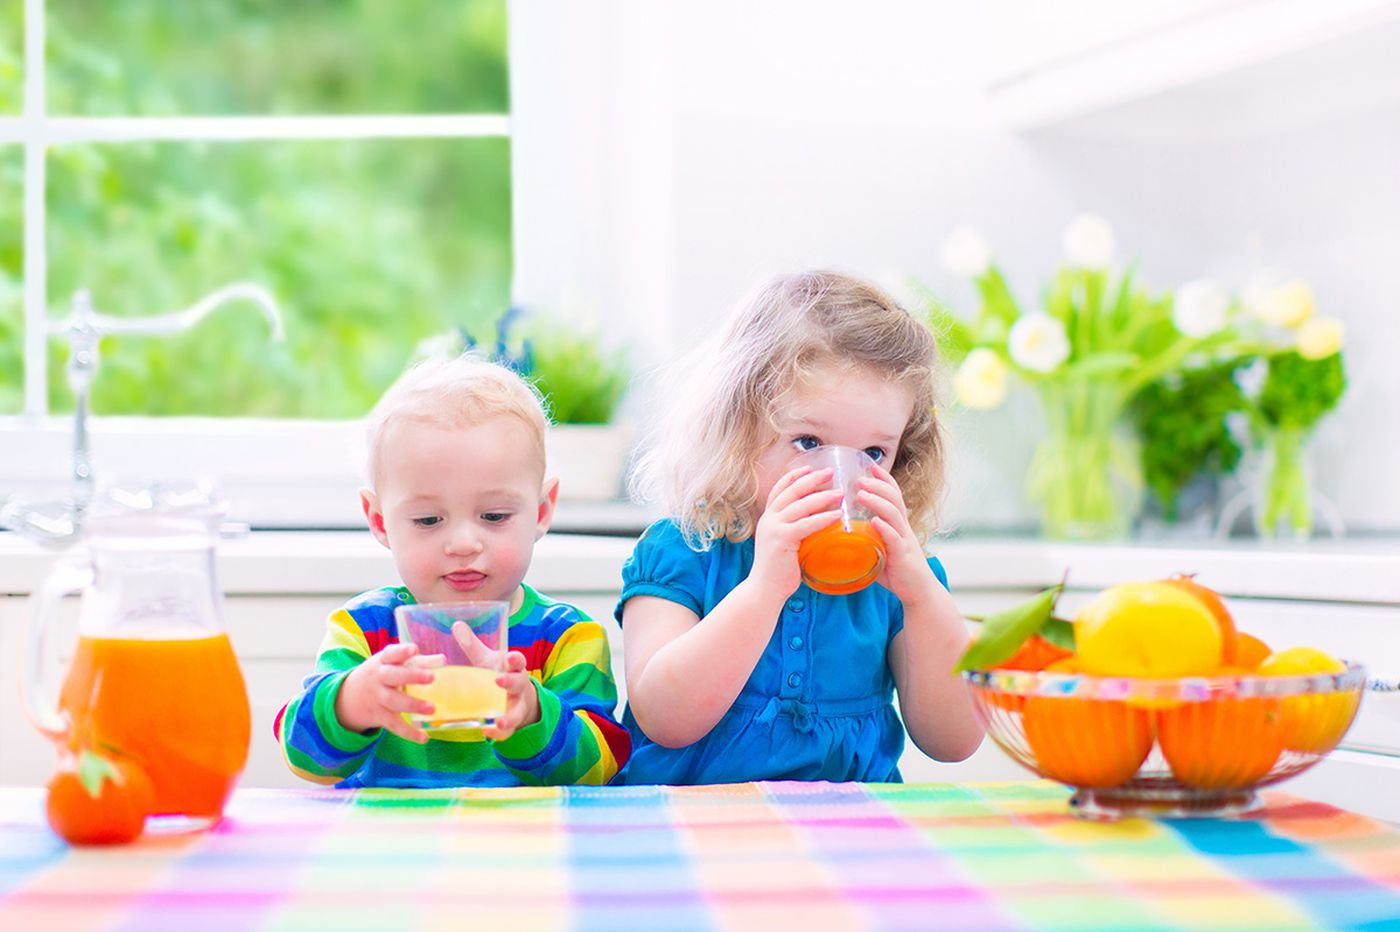 Q&A: How can a healthy diet affect my child's development?